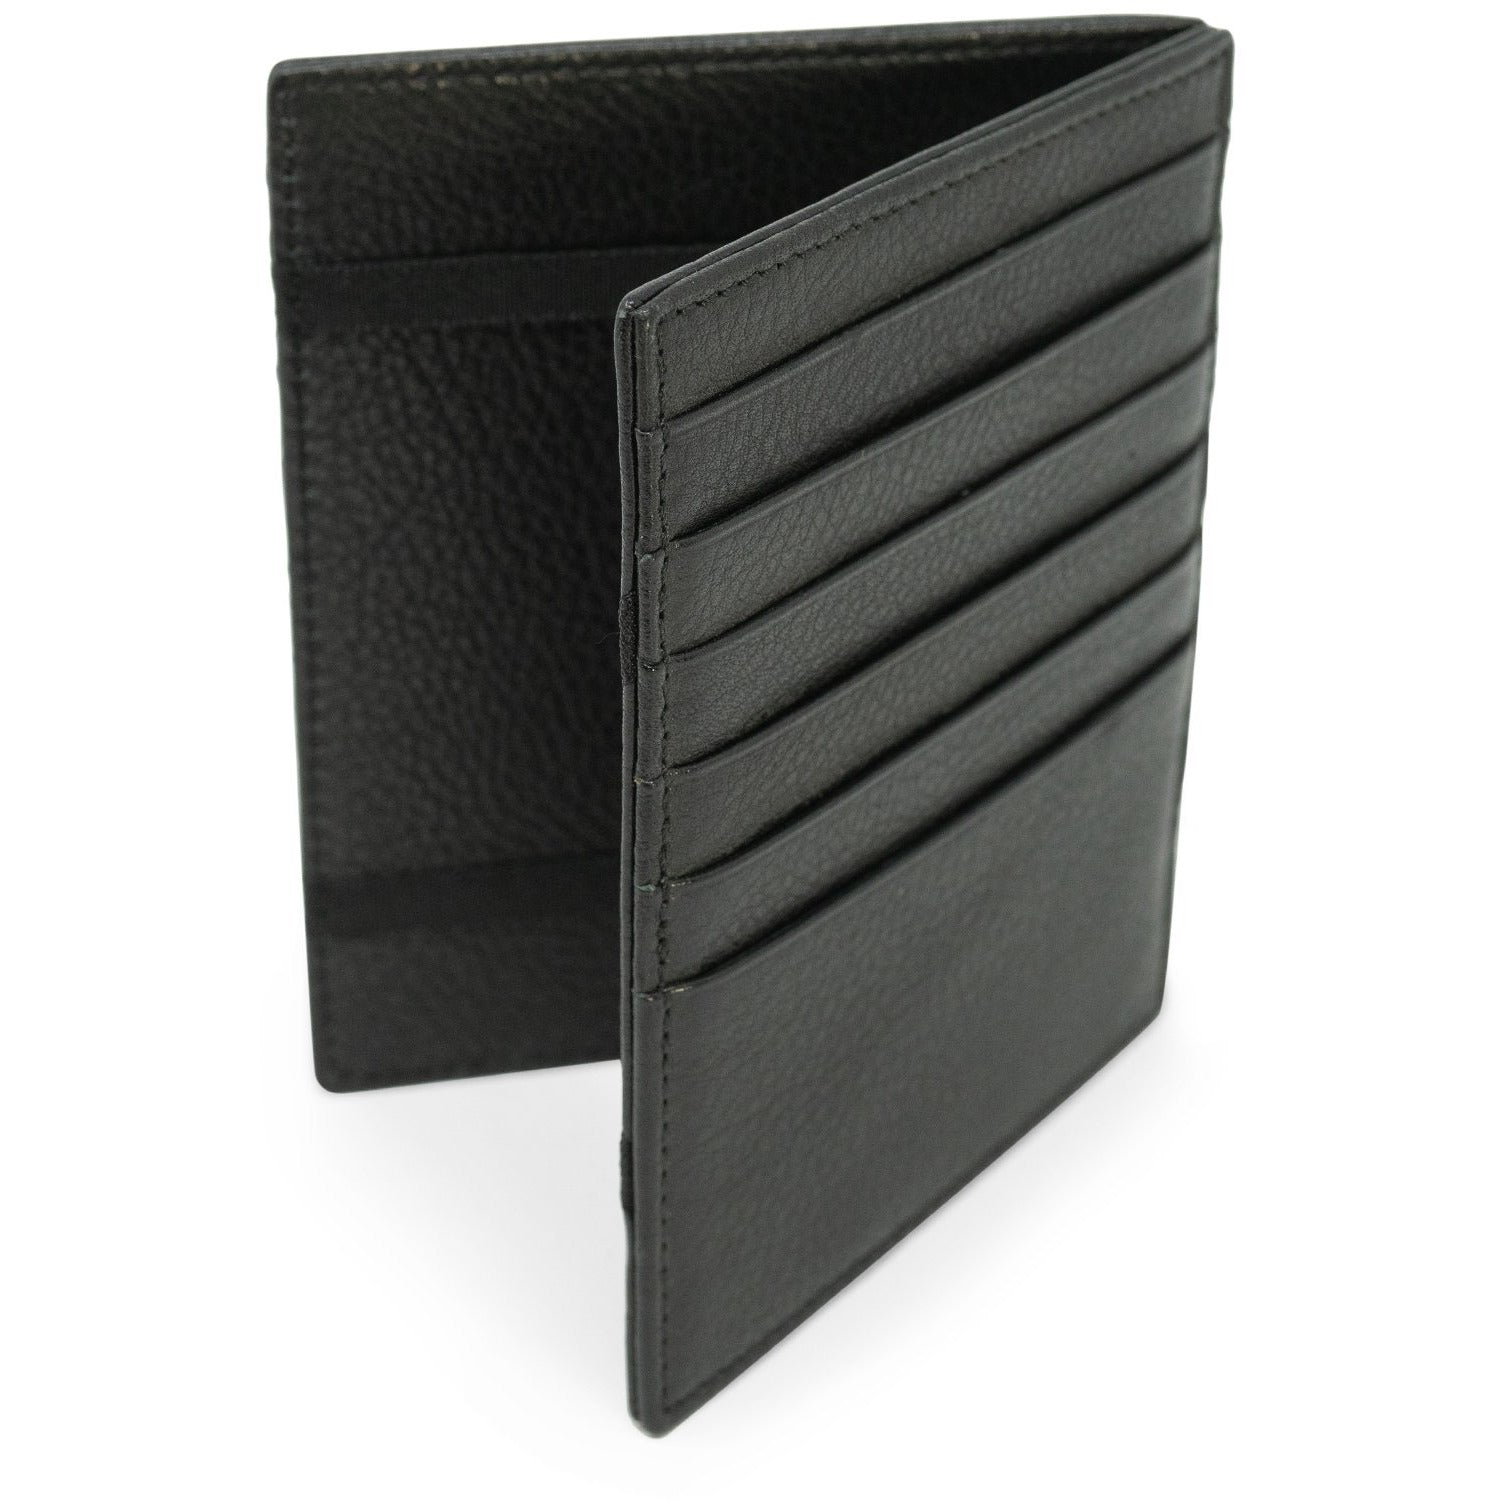 Money Clips and Card Holder - Jennifer Tattanelli